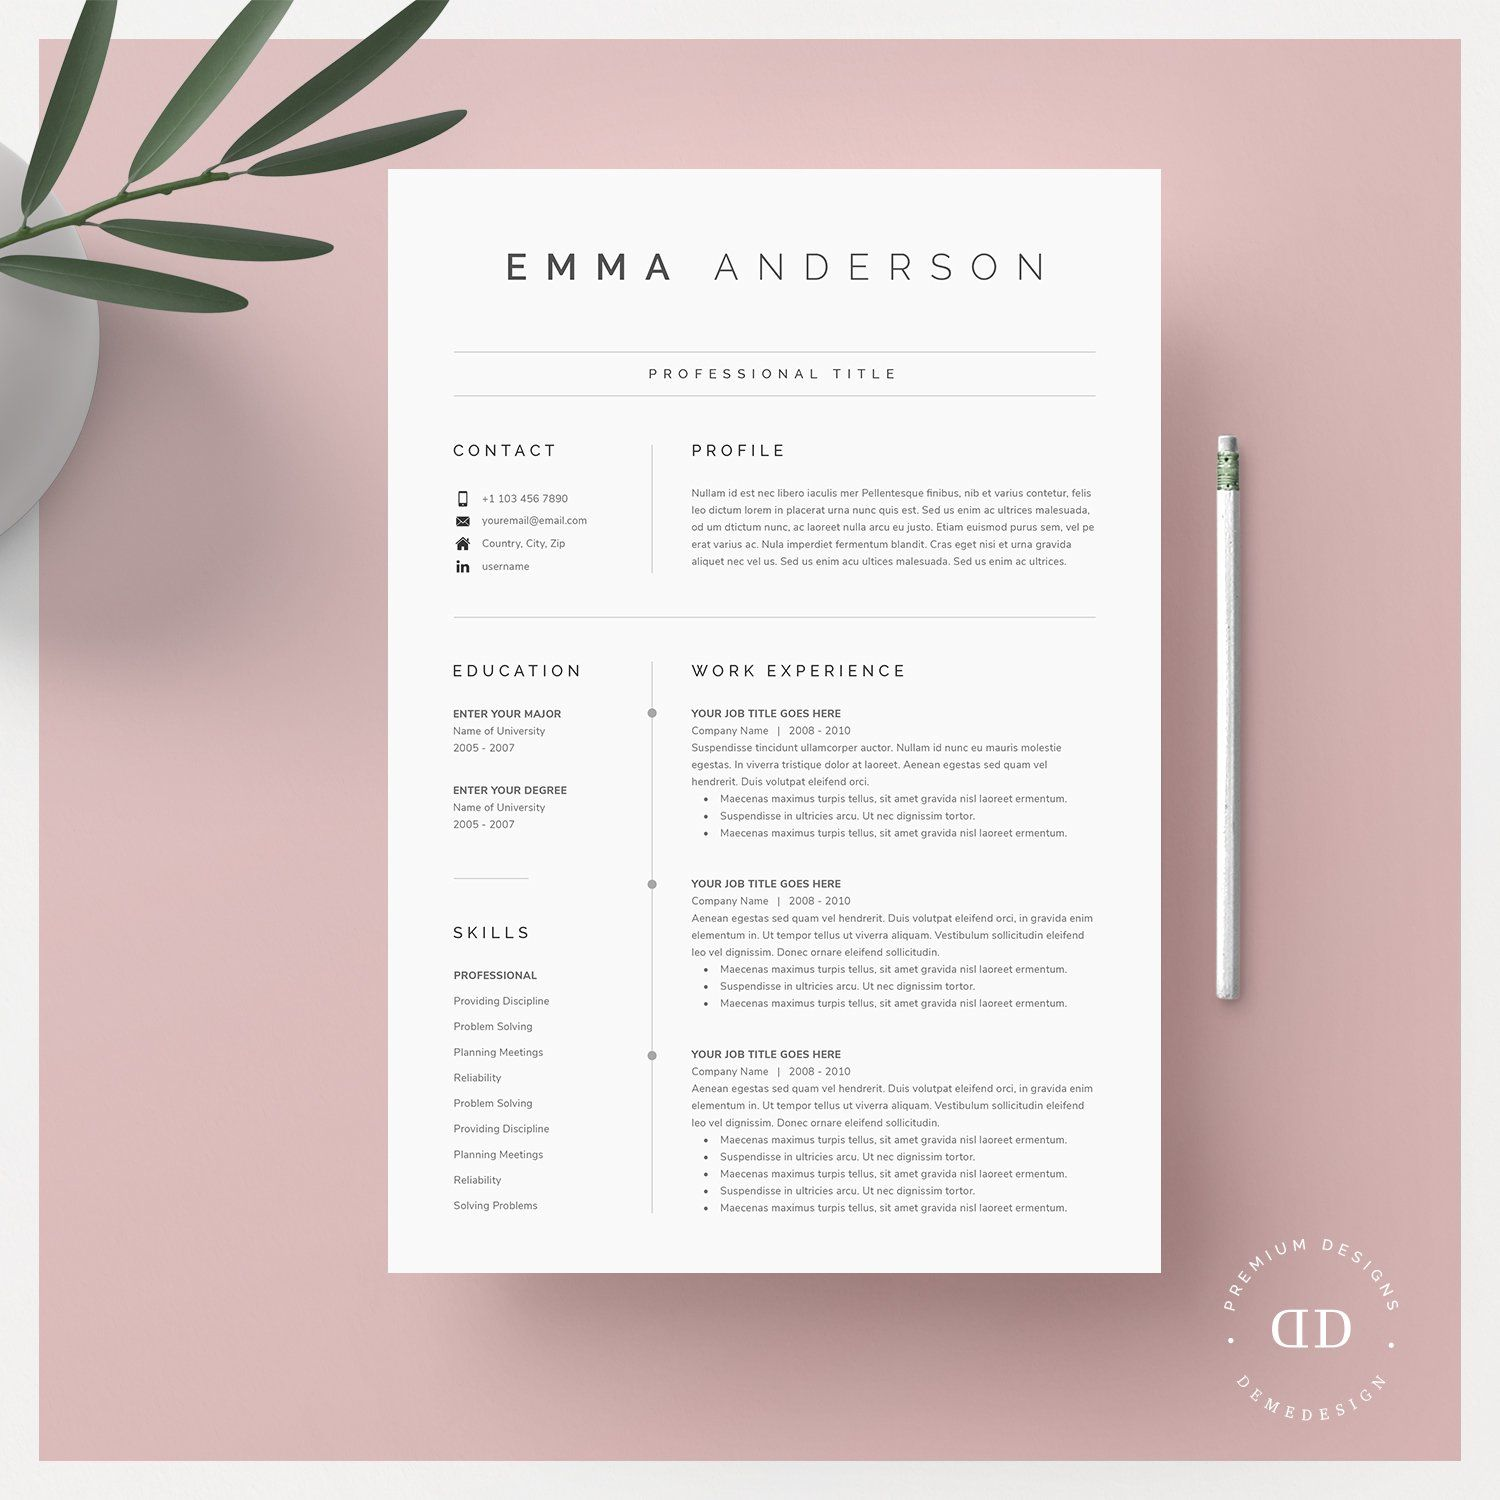 Word Resume Cover Letter Cover Letter Template Cover Letter For Resume Resume Template